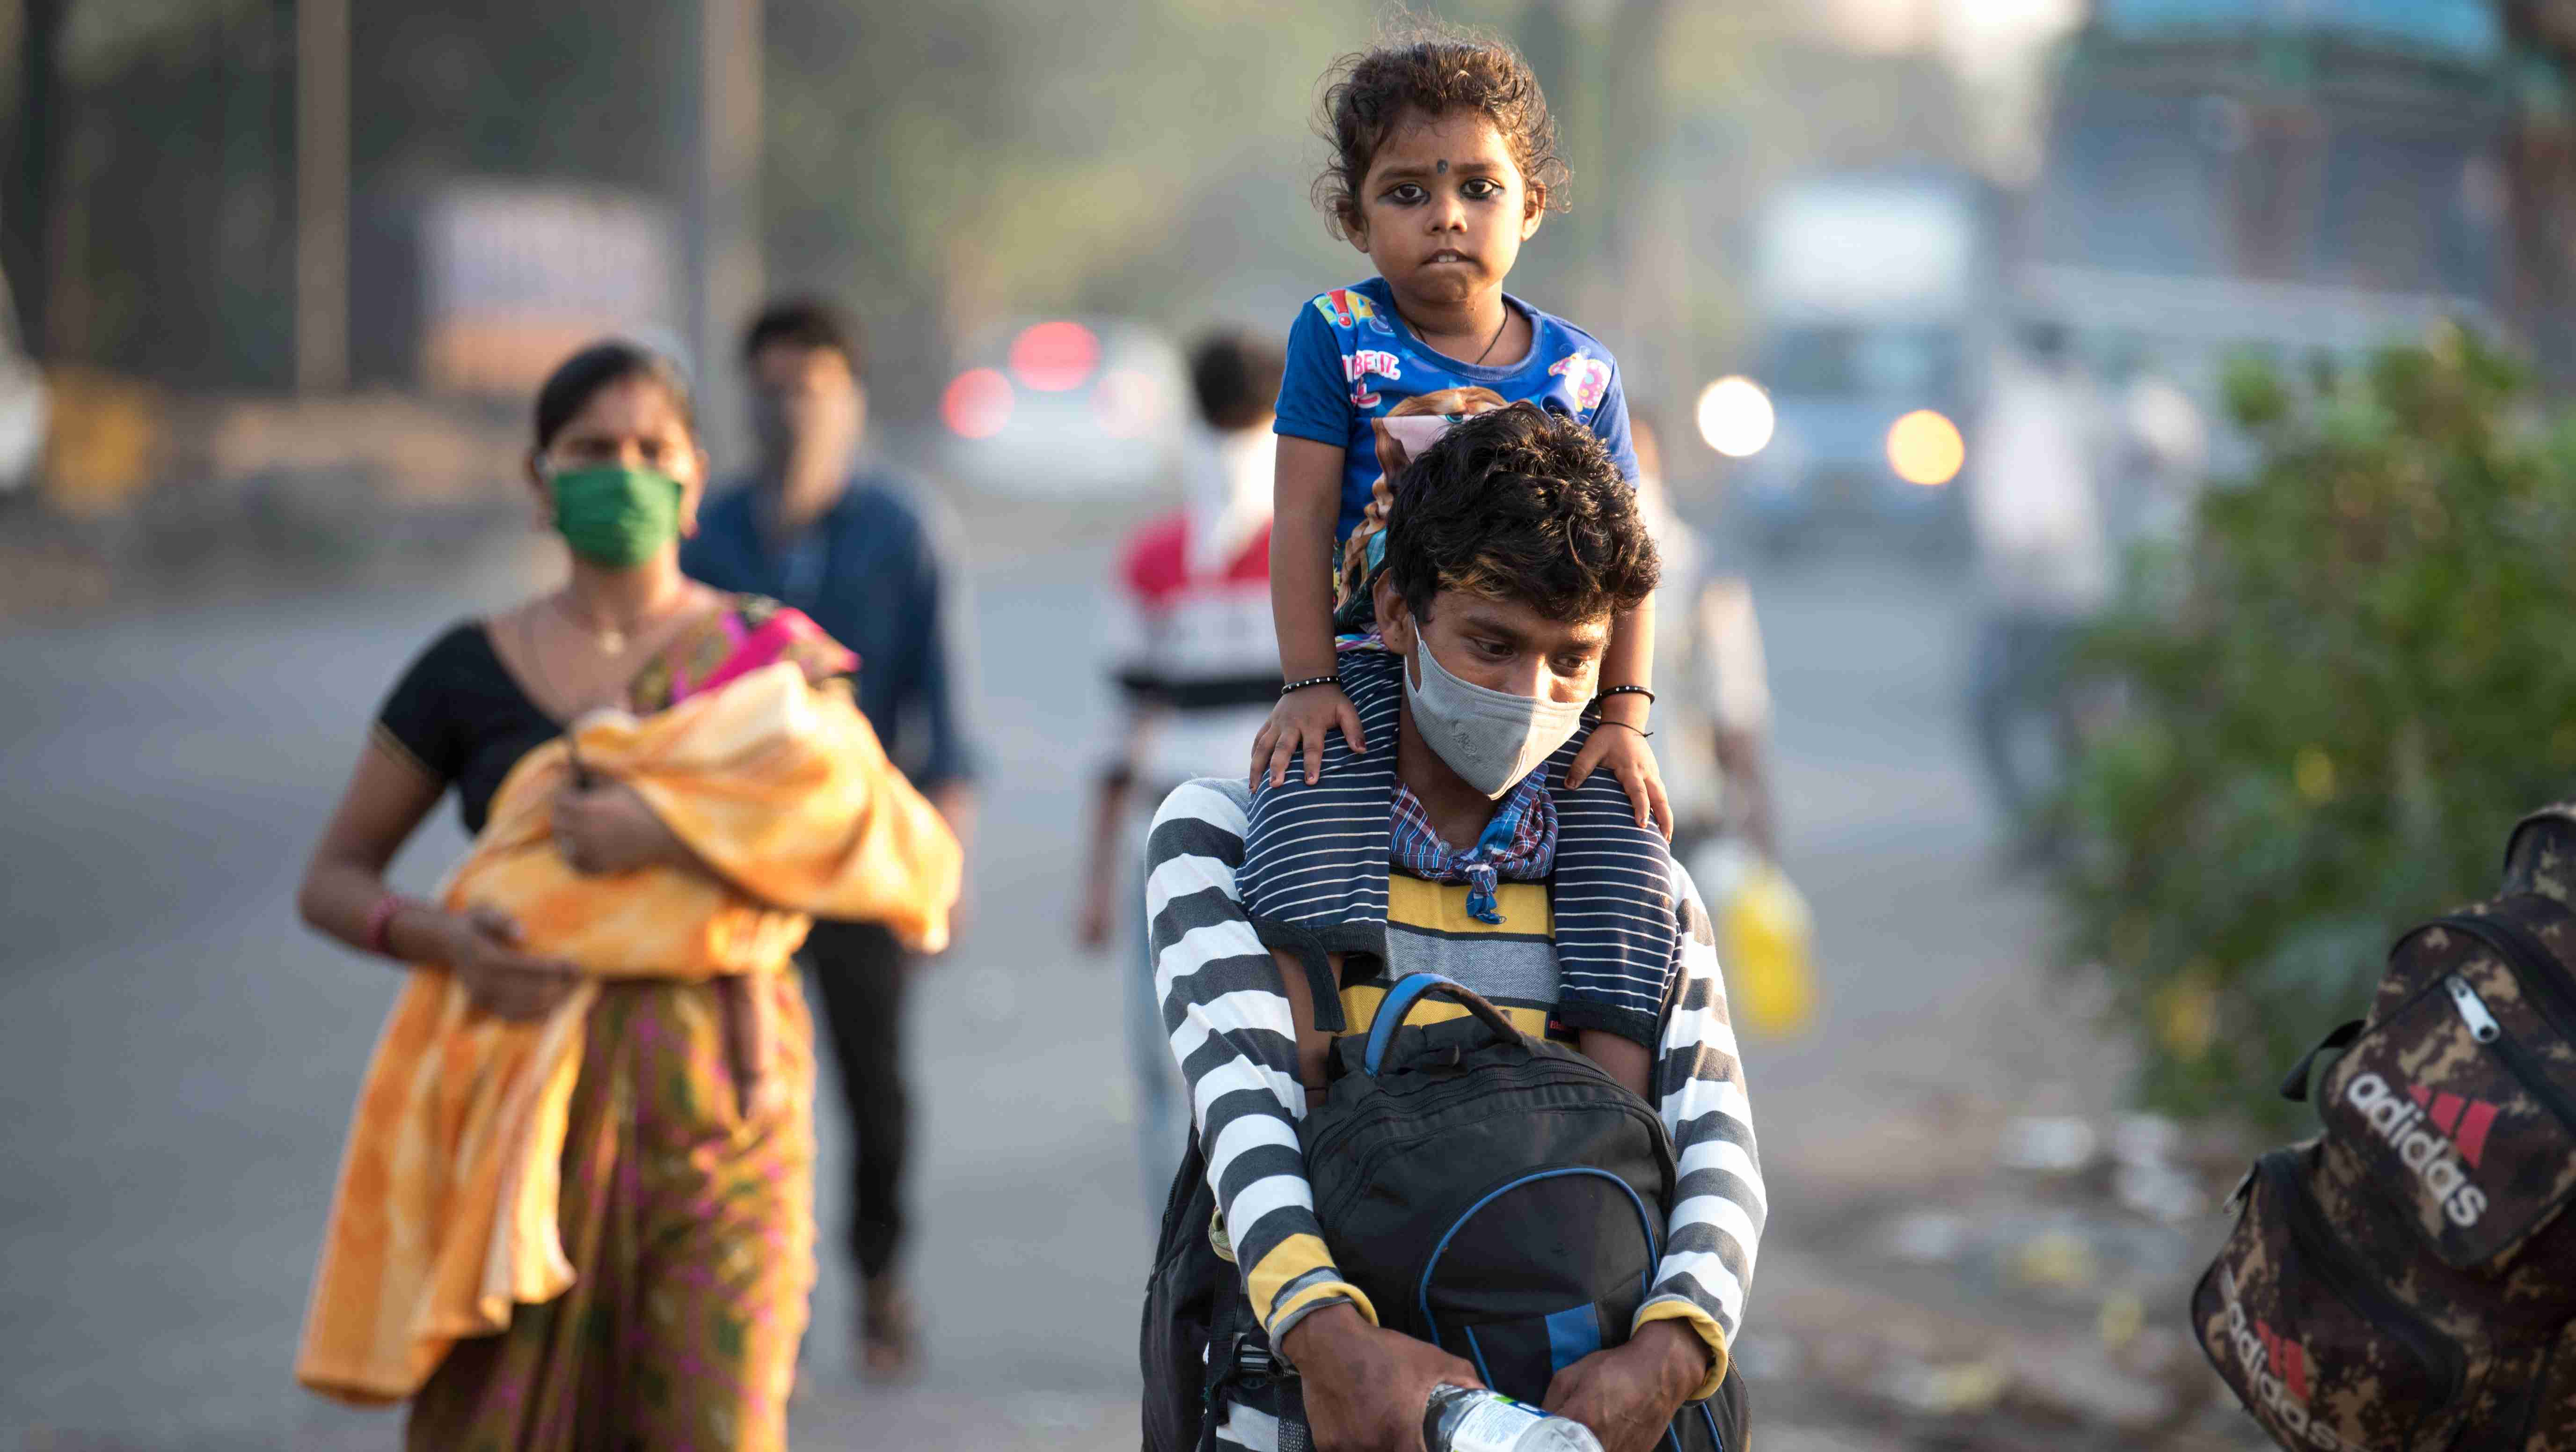 MUMBAI/INDIA - MAY 11, 2020: Migrant workers walk on the highway on their journey back home during a nationwide lockdown to fight the spread of the COVID-19 coronavirus.